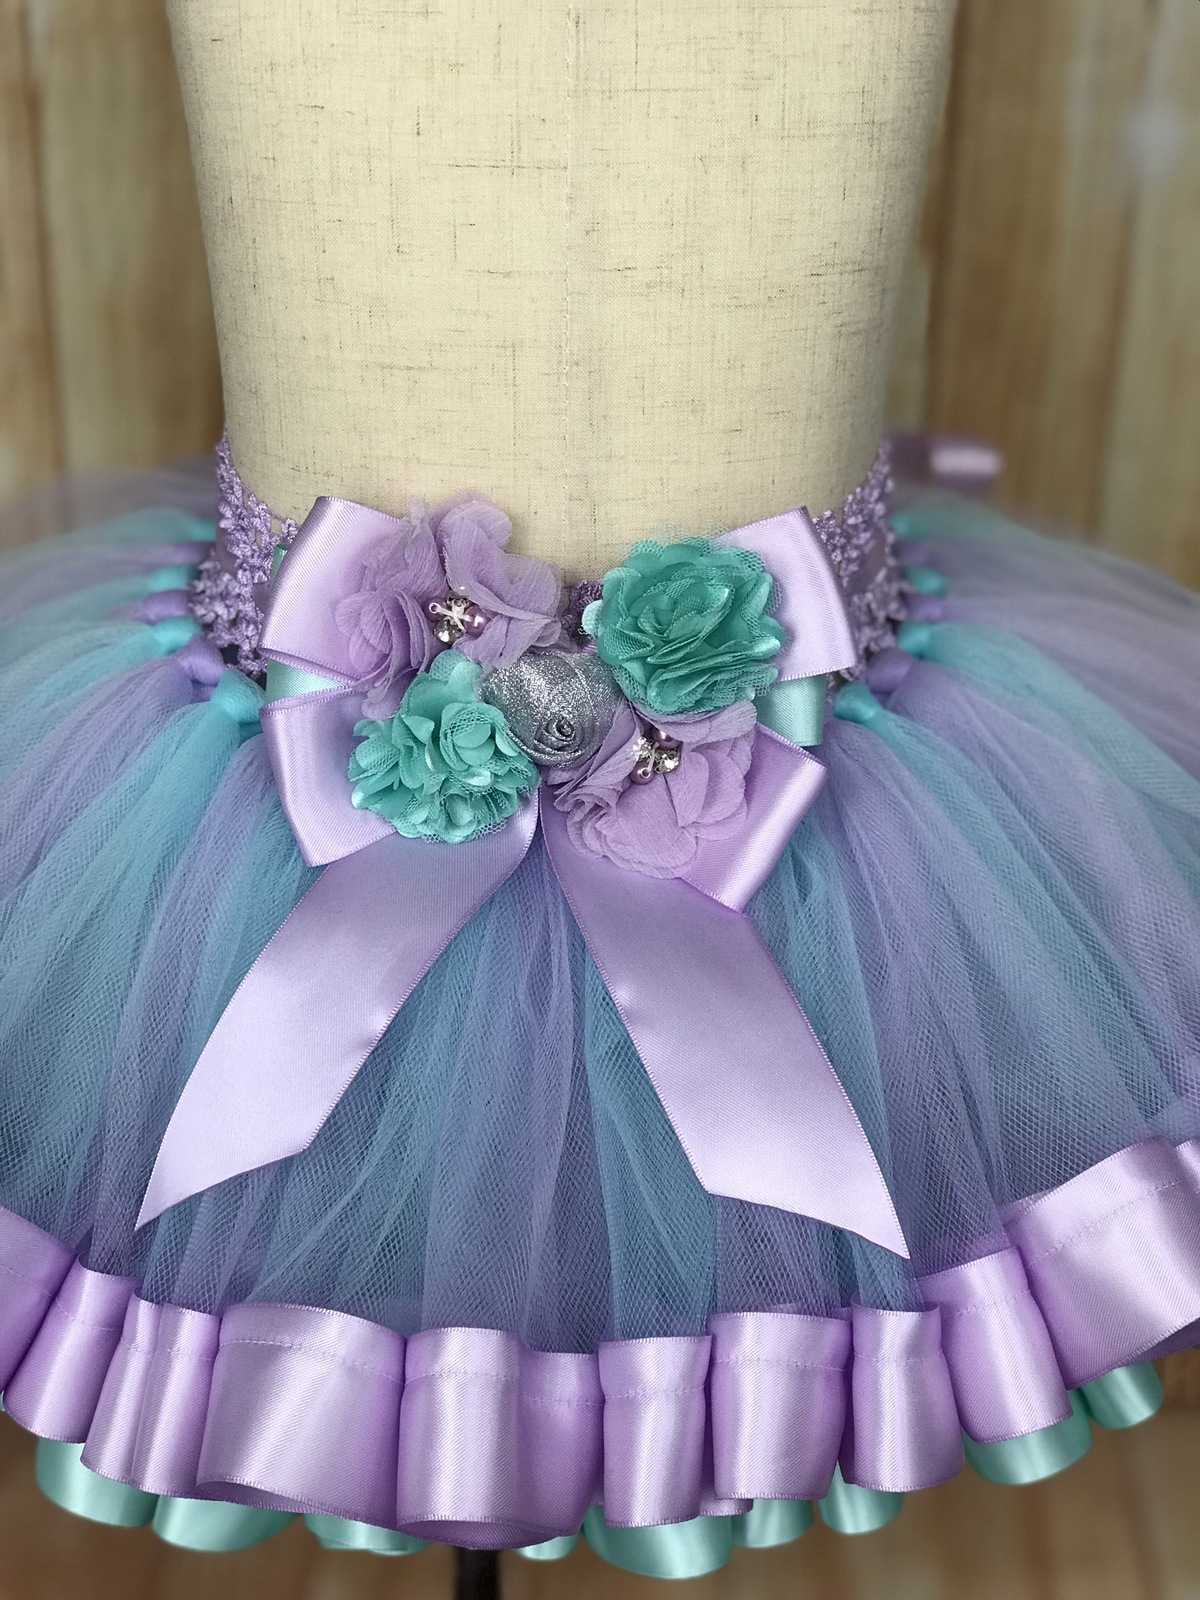 Ribbon Trimmed Tulle Tutu Skirt, customized in any color choice - $40.00 - $55.00